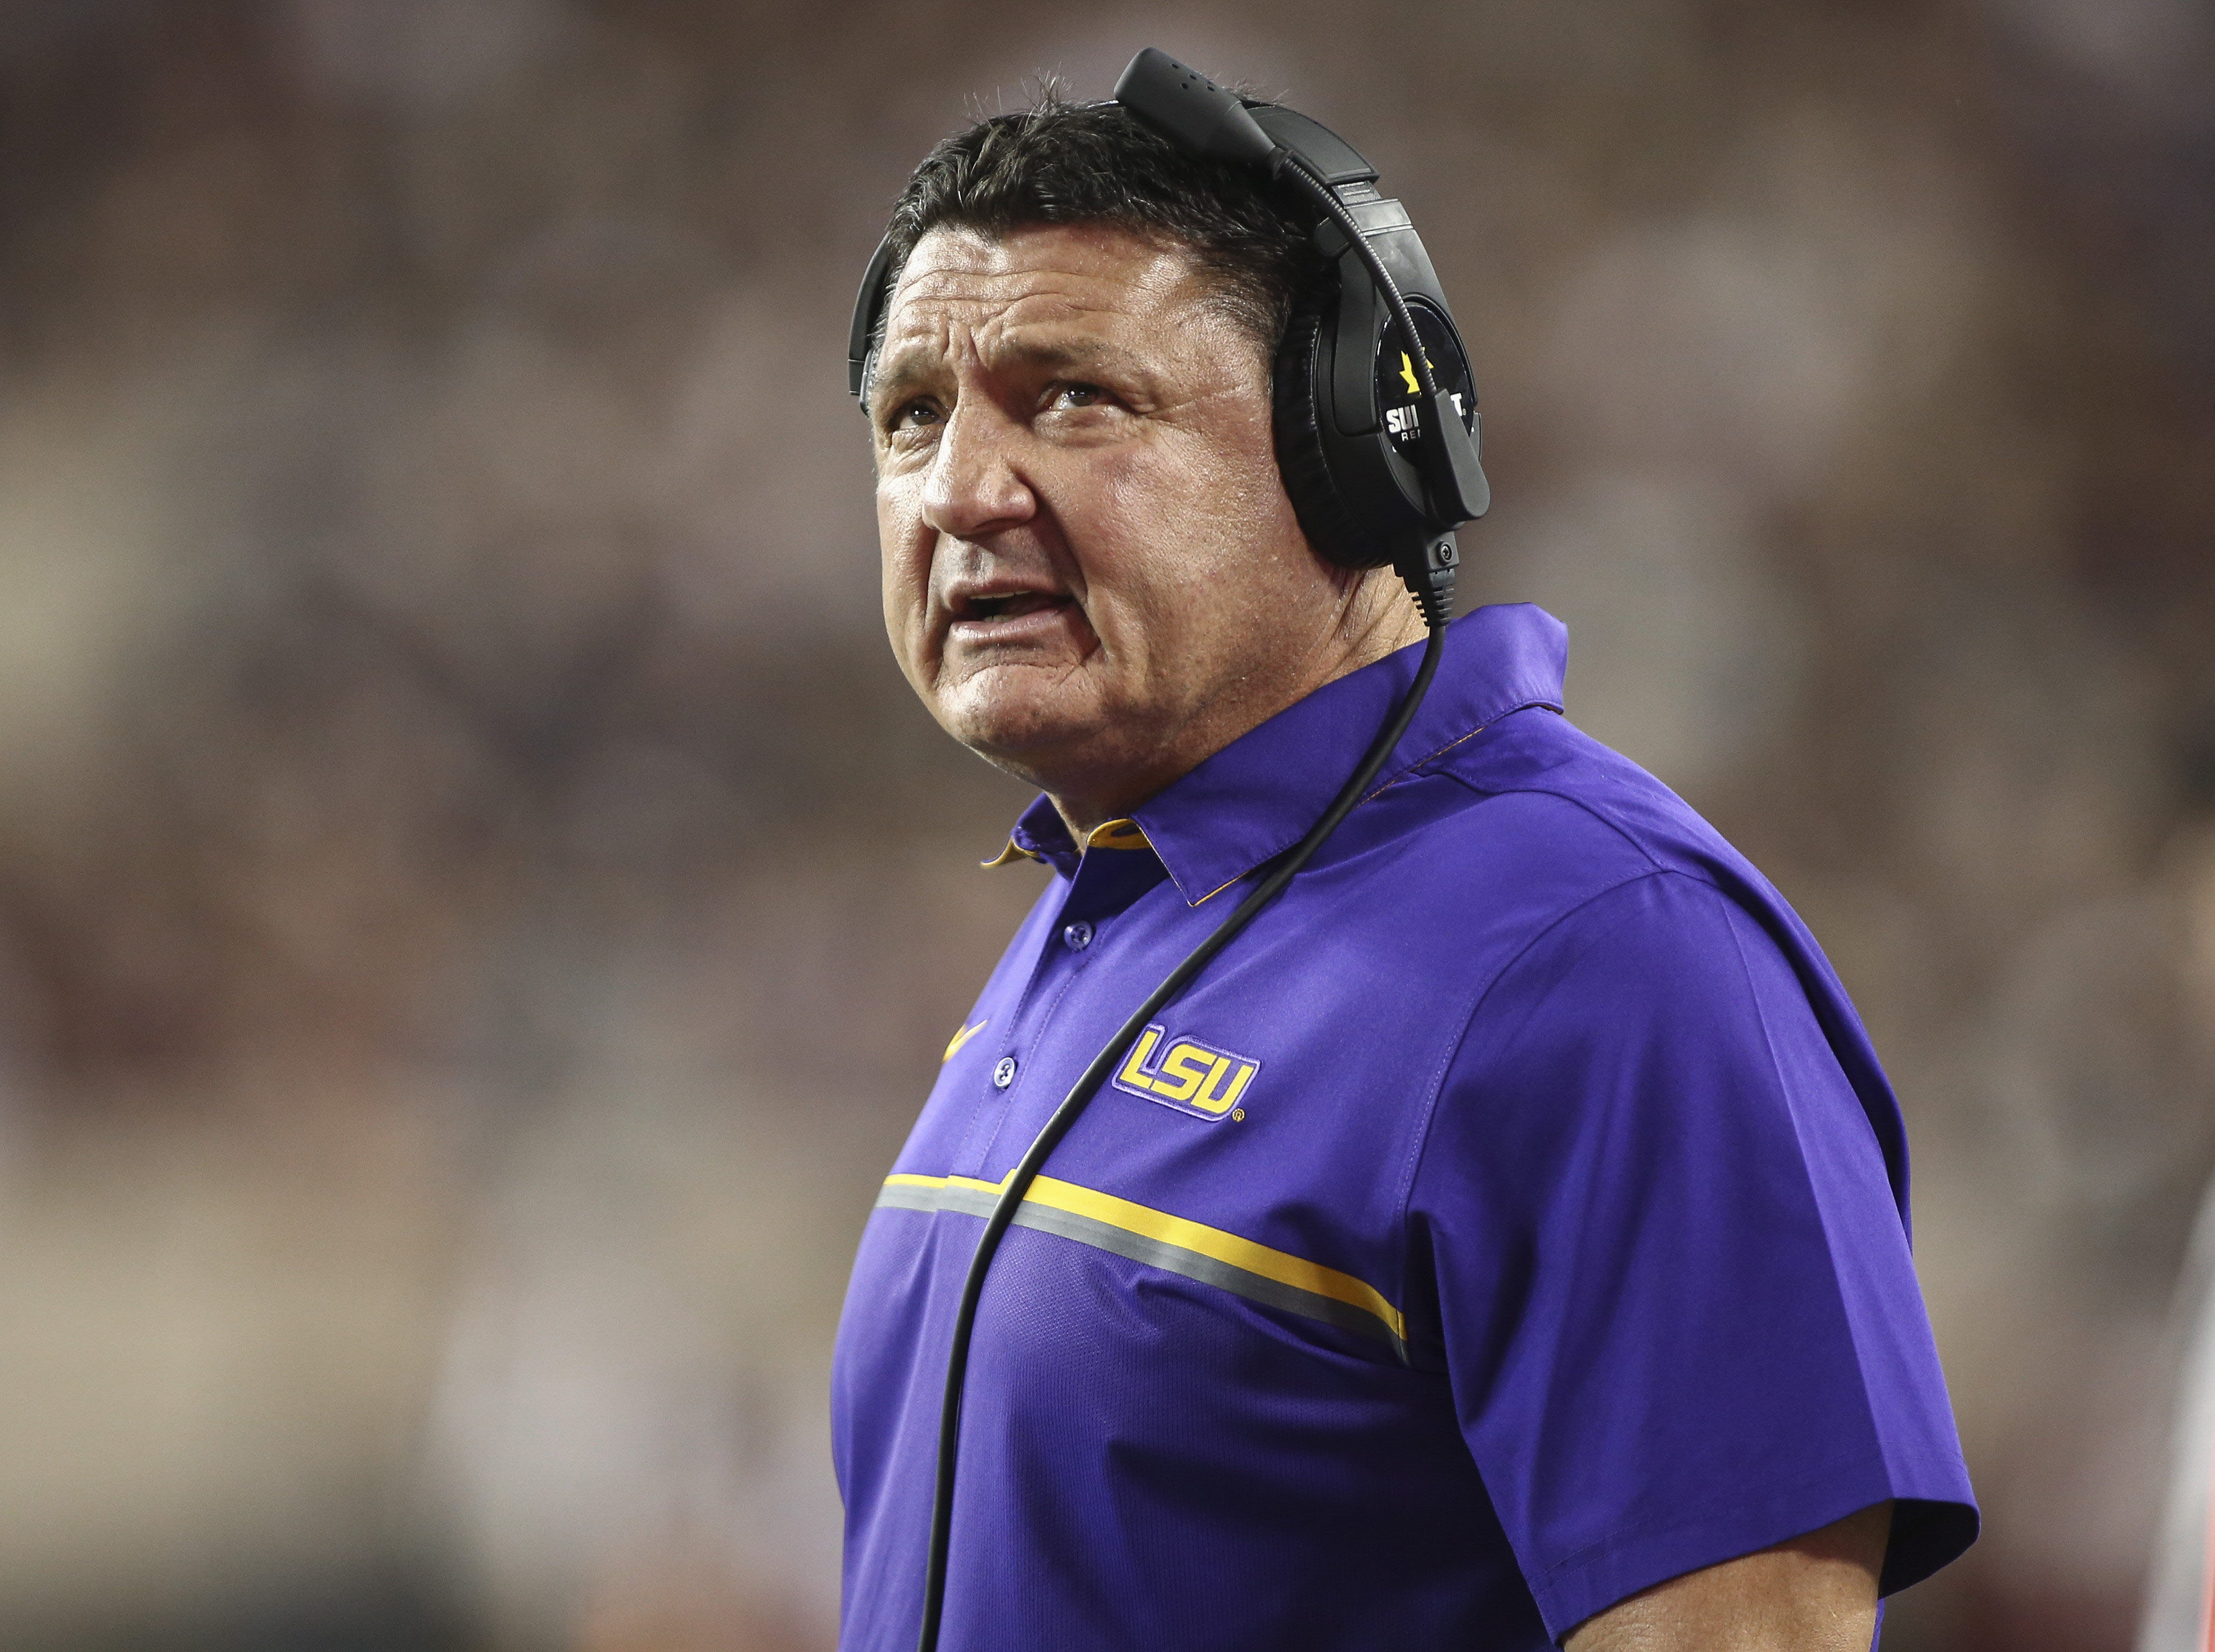 LSU freshman LB Jacob Phillips being investigated for rape